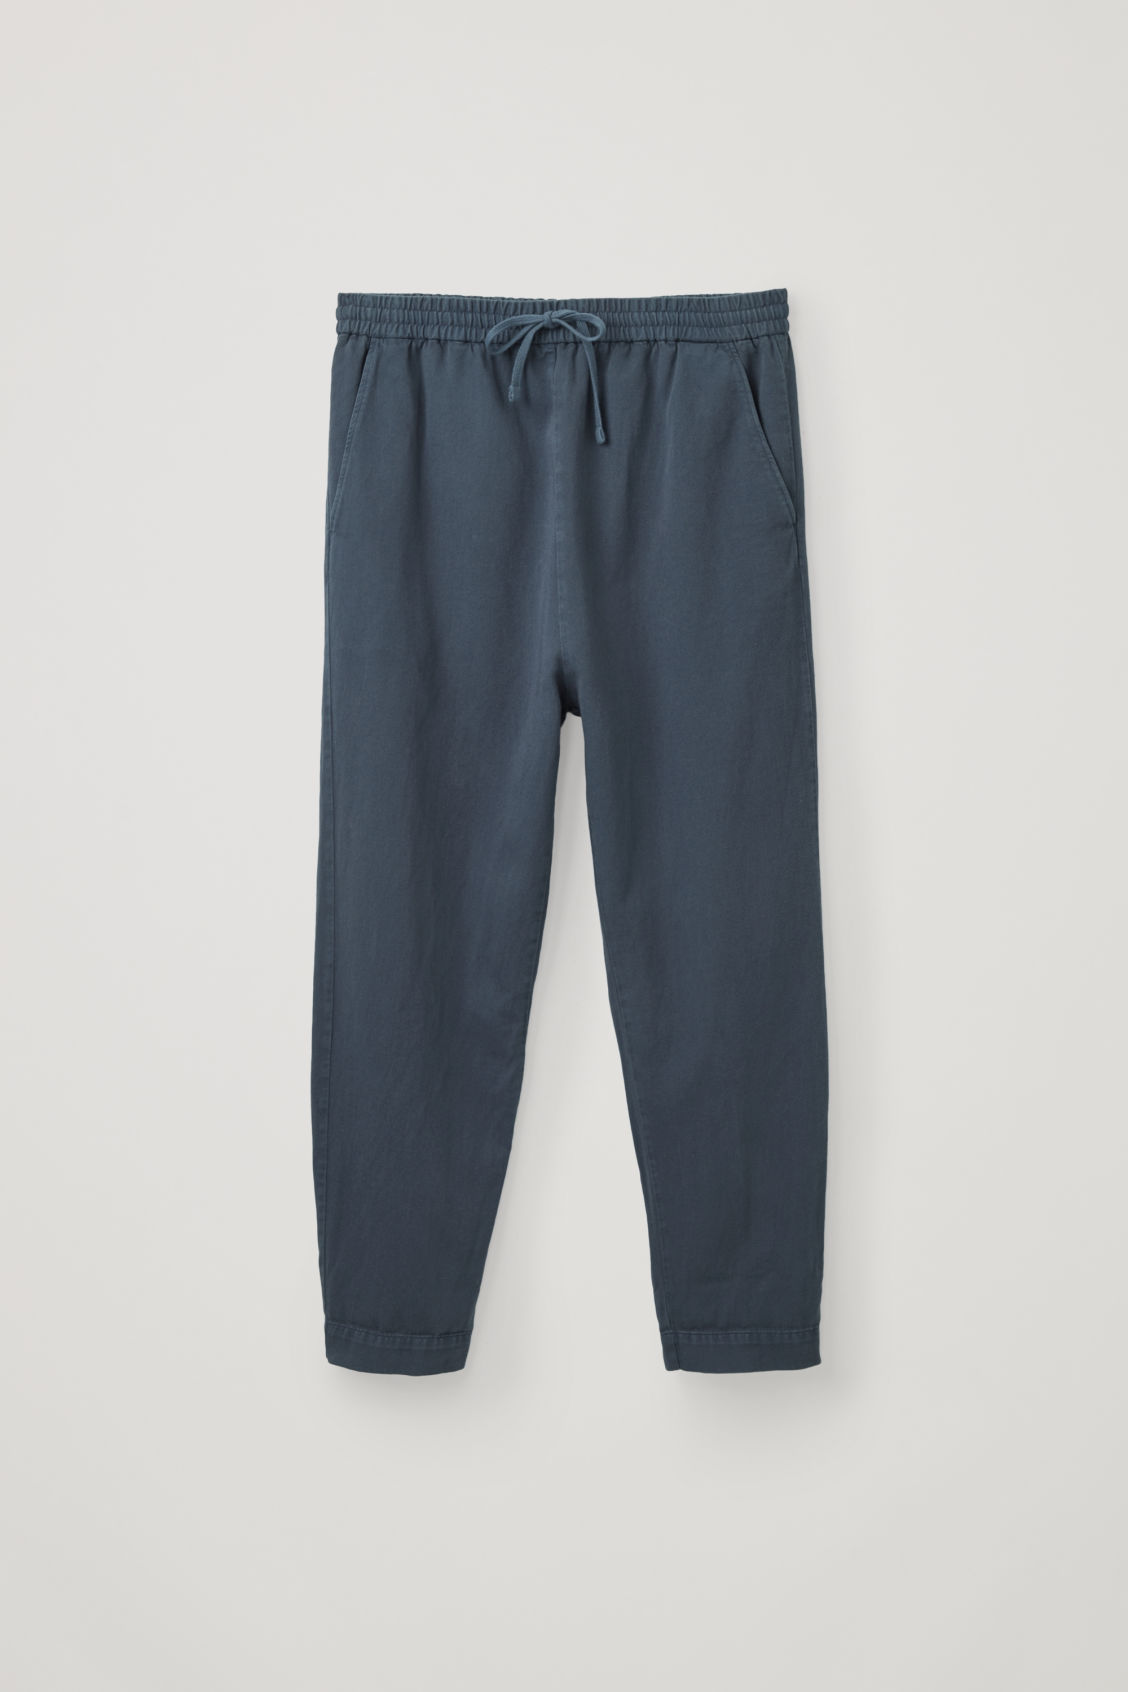 Cos Relaxed Cotton-linen Pants In Blue